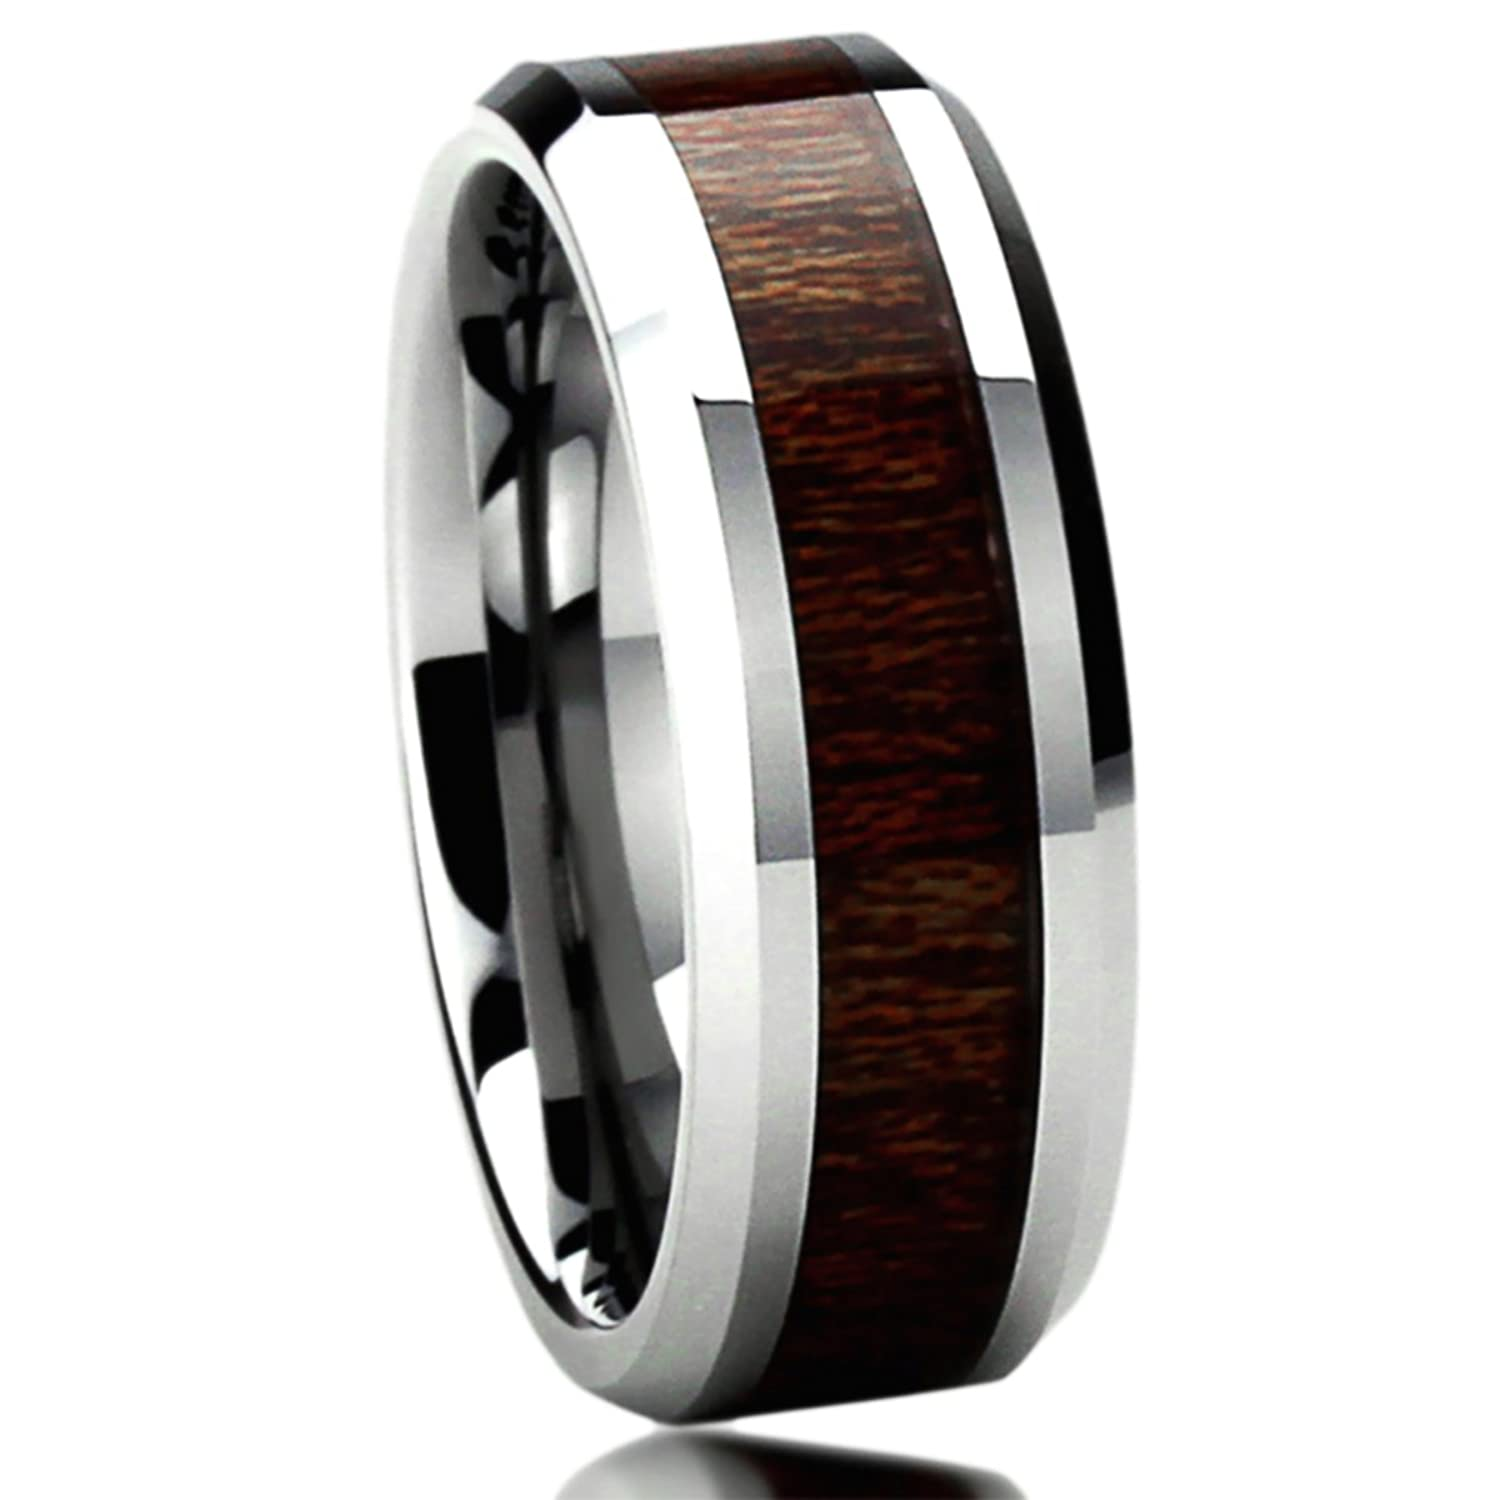 8MM Titanium Mens Womens Rings Wood Grain Inlay fort Fit